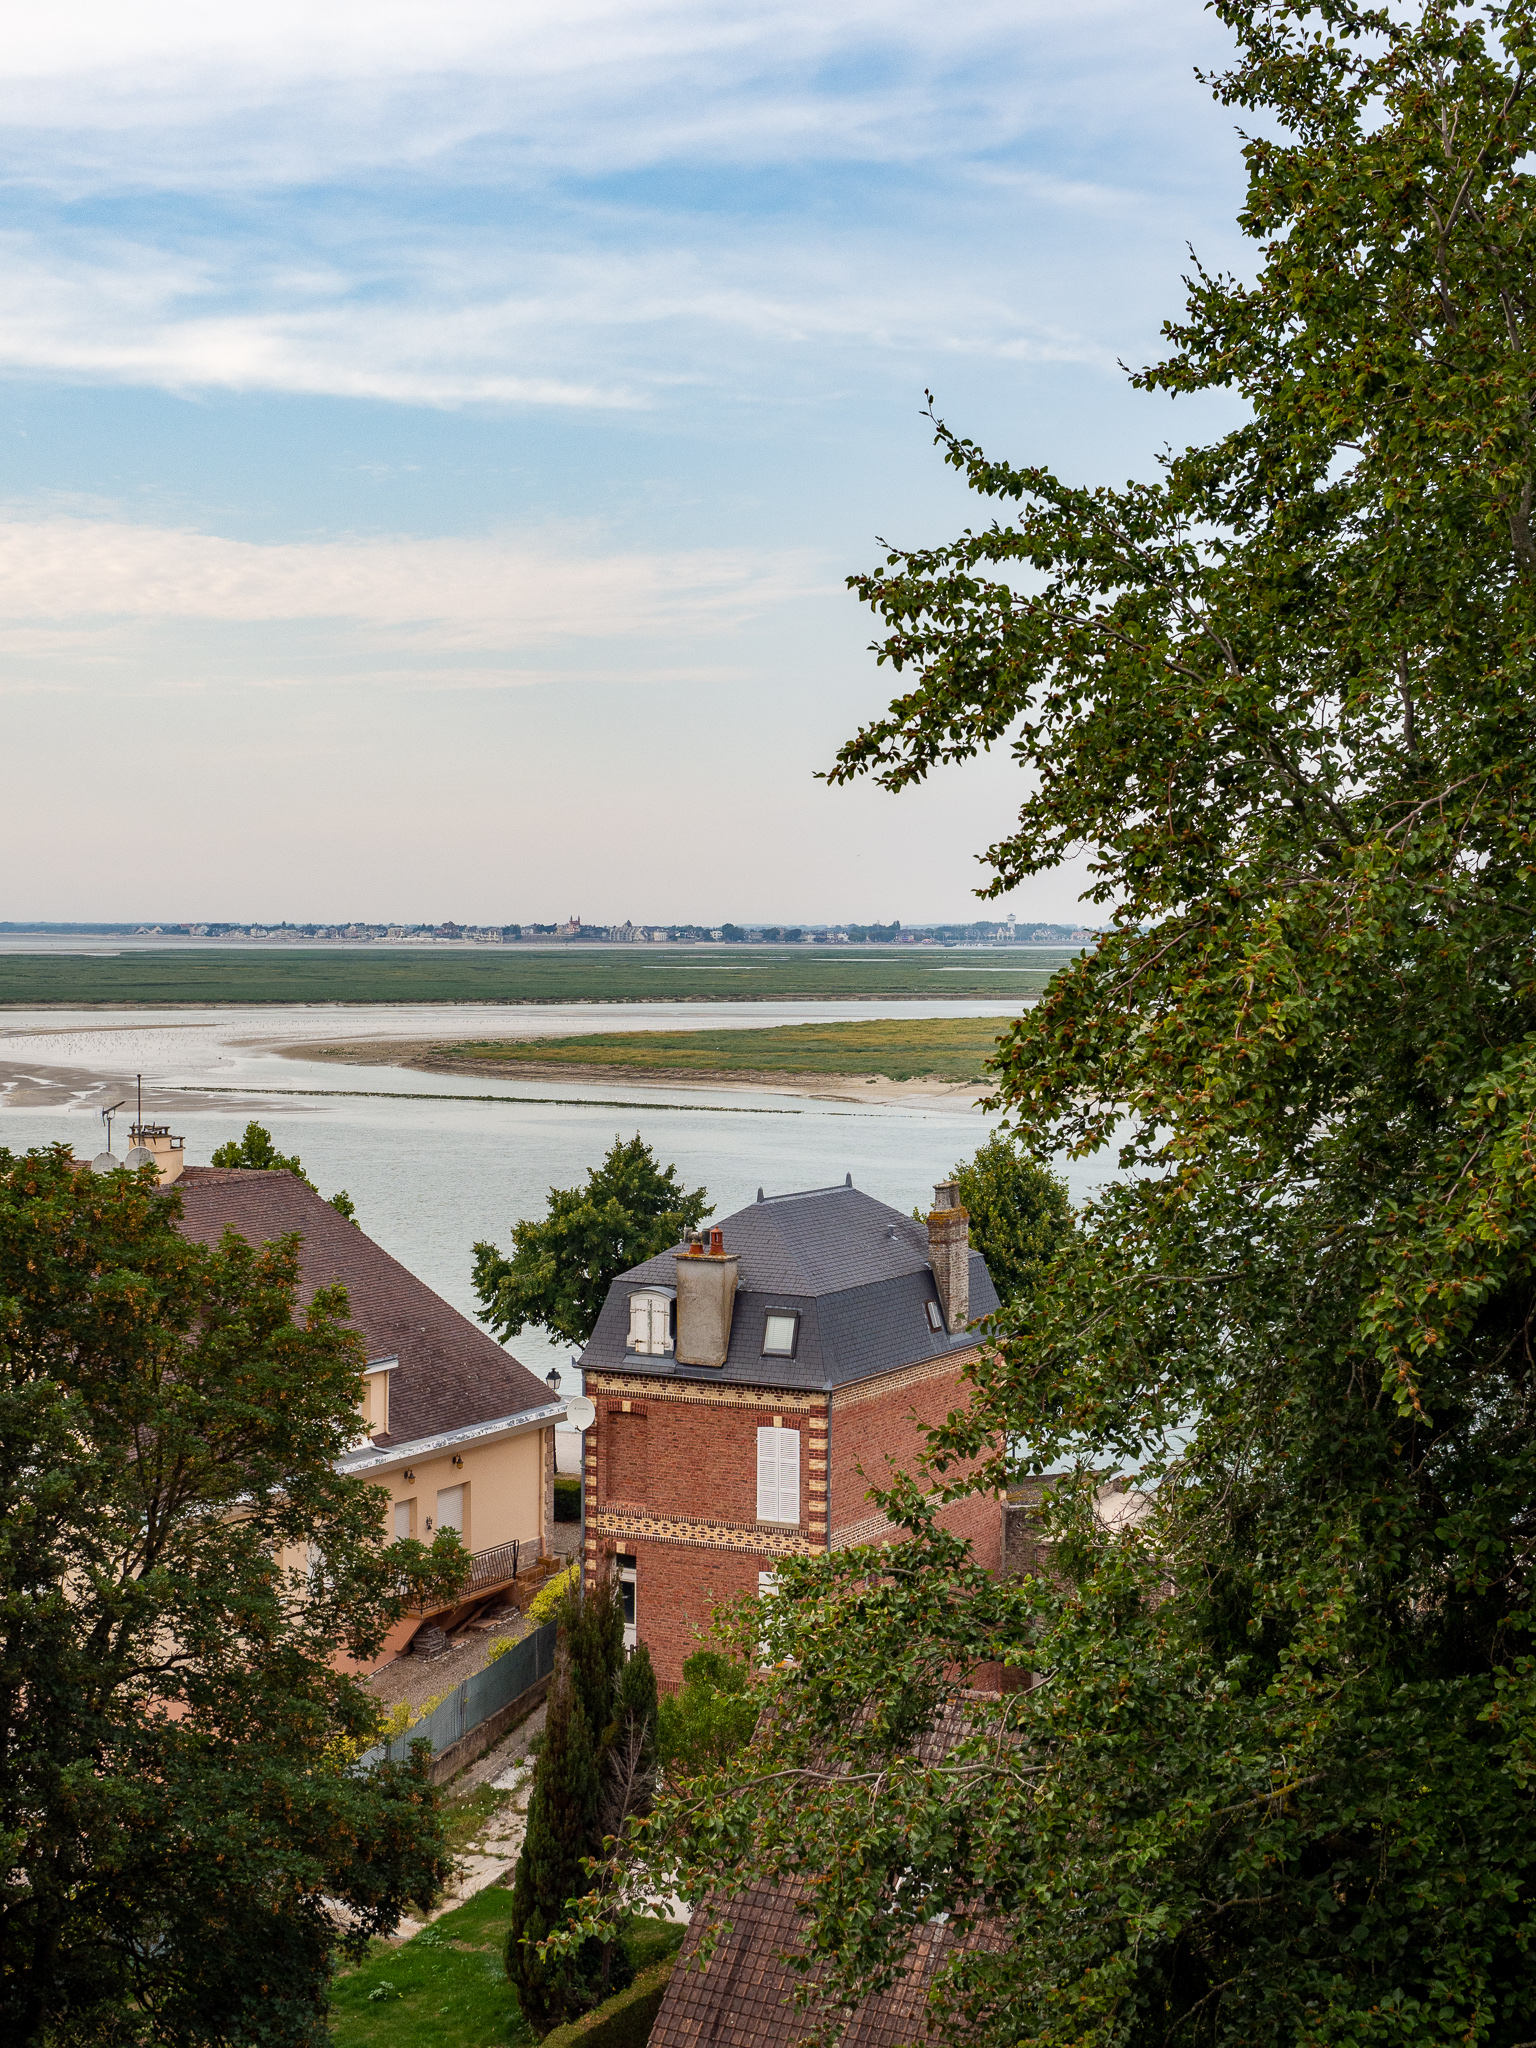 View on the Baie de Somme